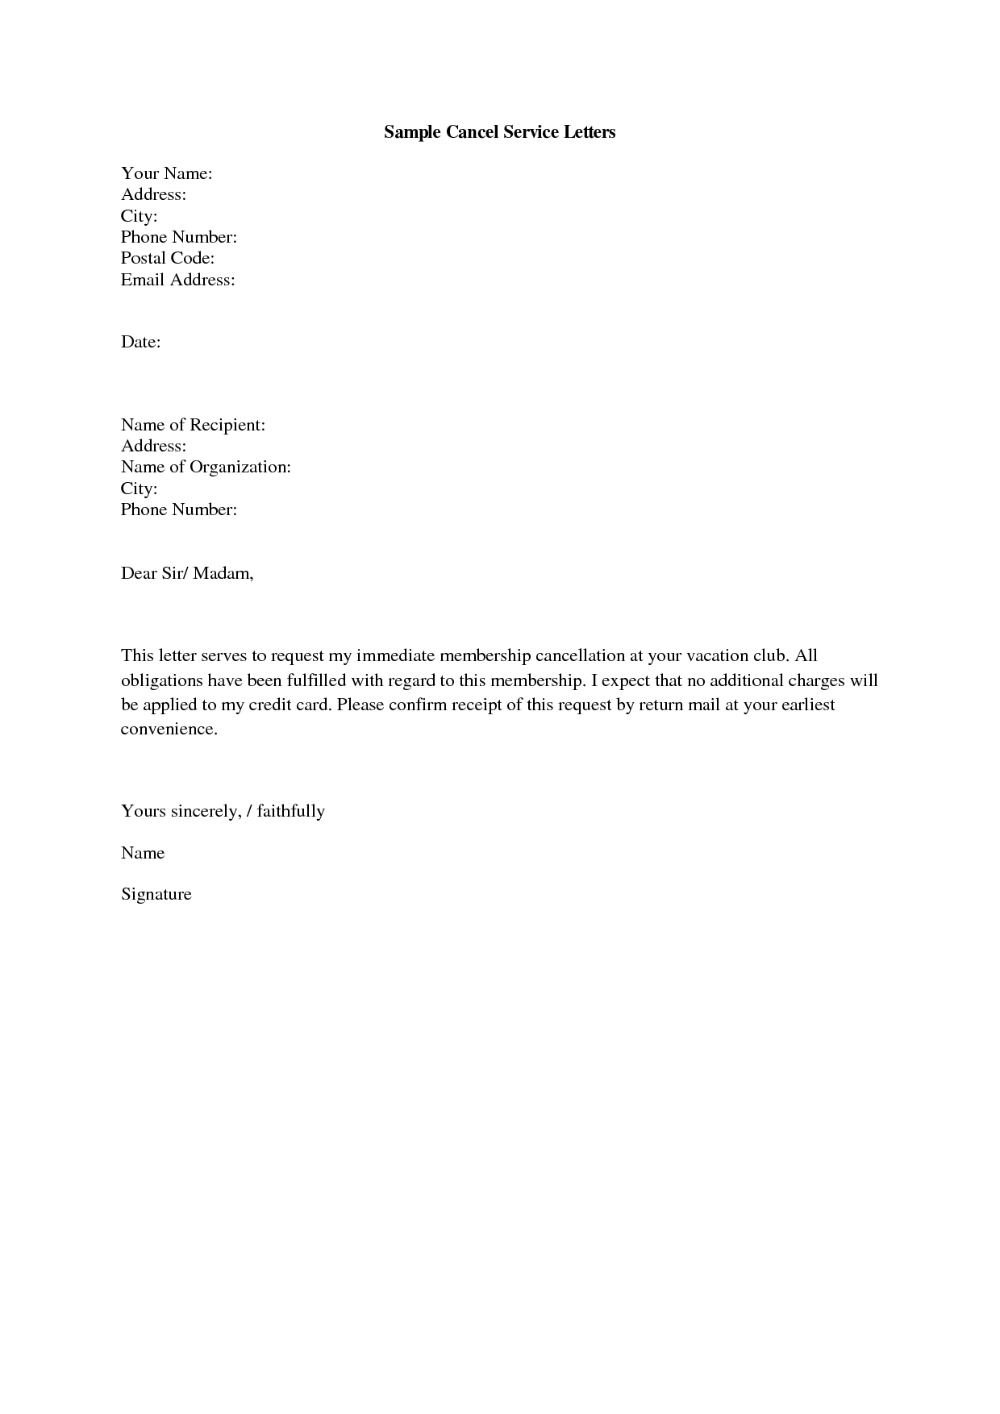 Gym Cancellation Letter Gplusnick Throughout Gym Membership Cancellation Letter Template Free 10 Profession Letter Templates Free Lettering Letter Templates